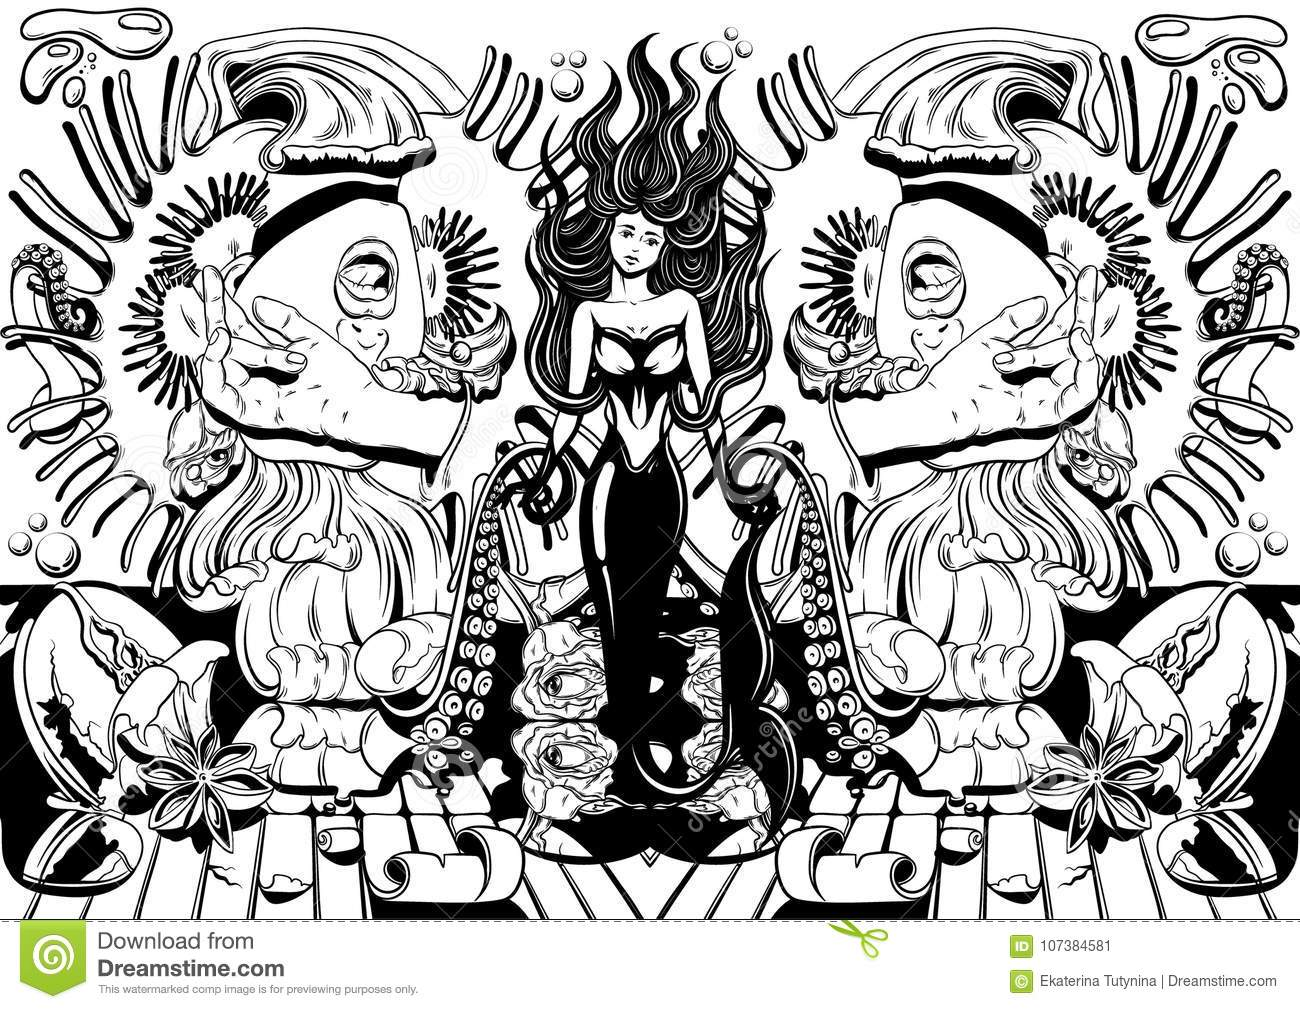 vector hand drawn illustration with screaming girl tentacles roses